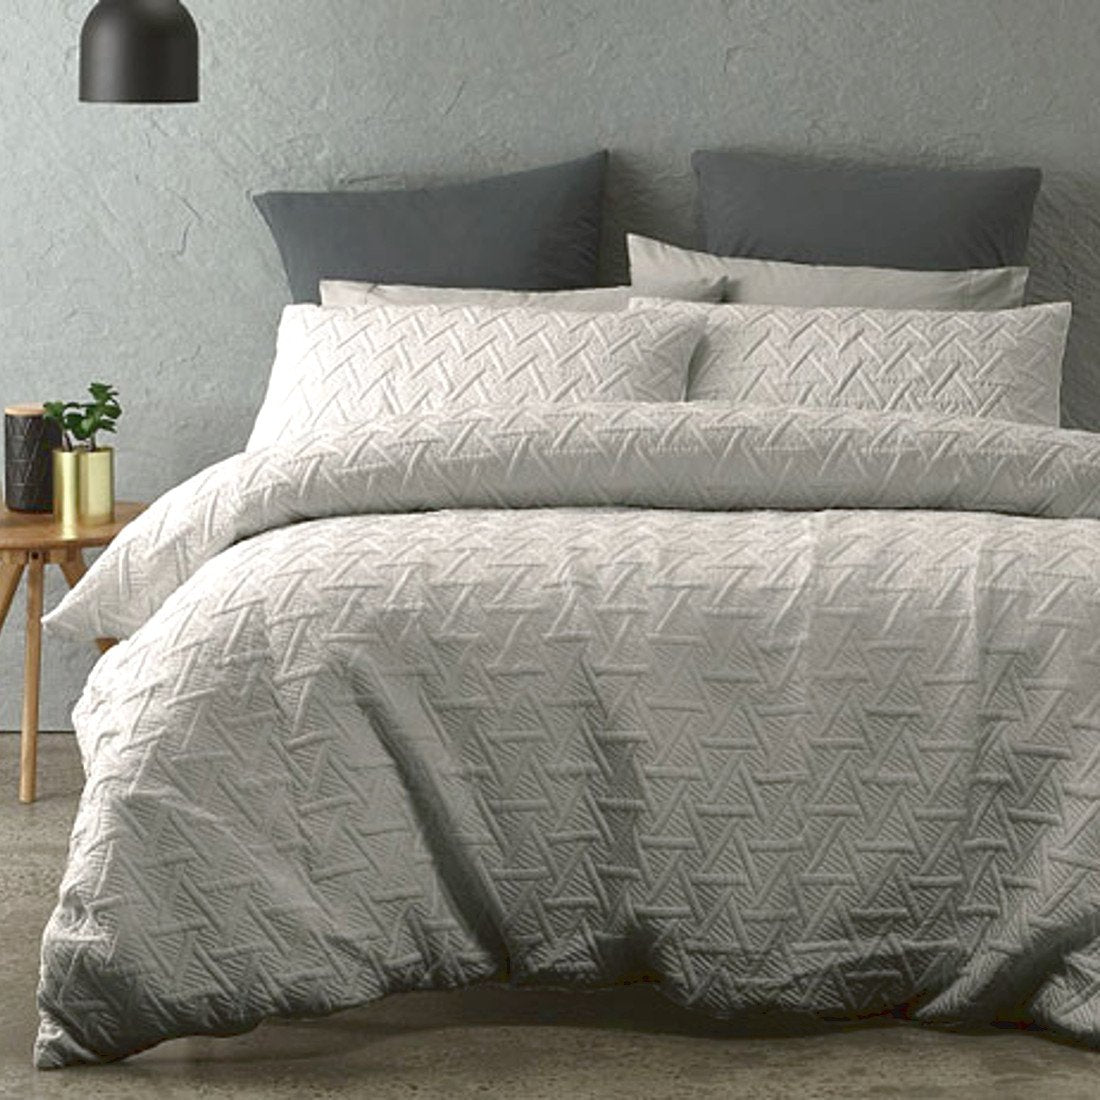 Silver Grey duvet cover set is Sophisticated, Minimal and understated addition with the quilted effect fabric.